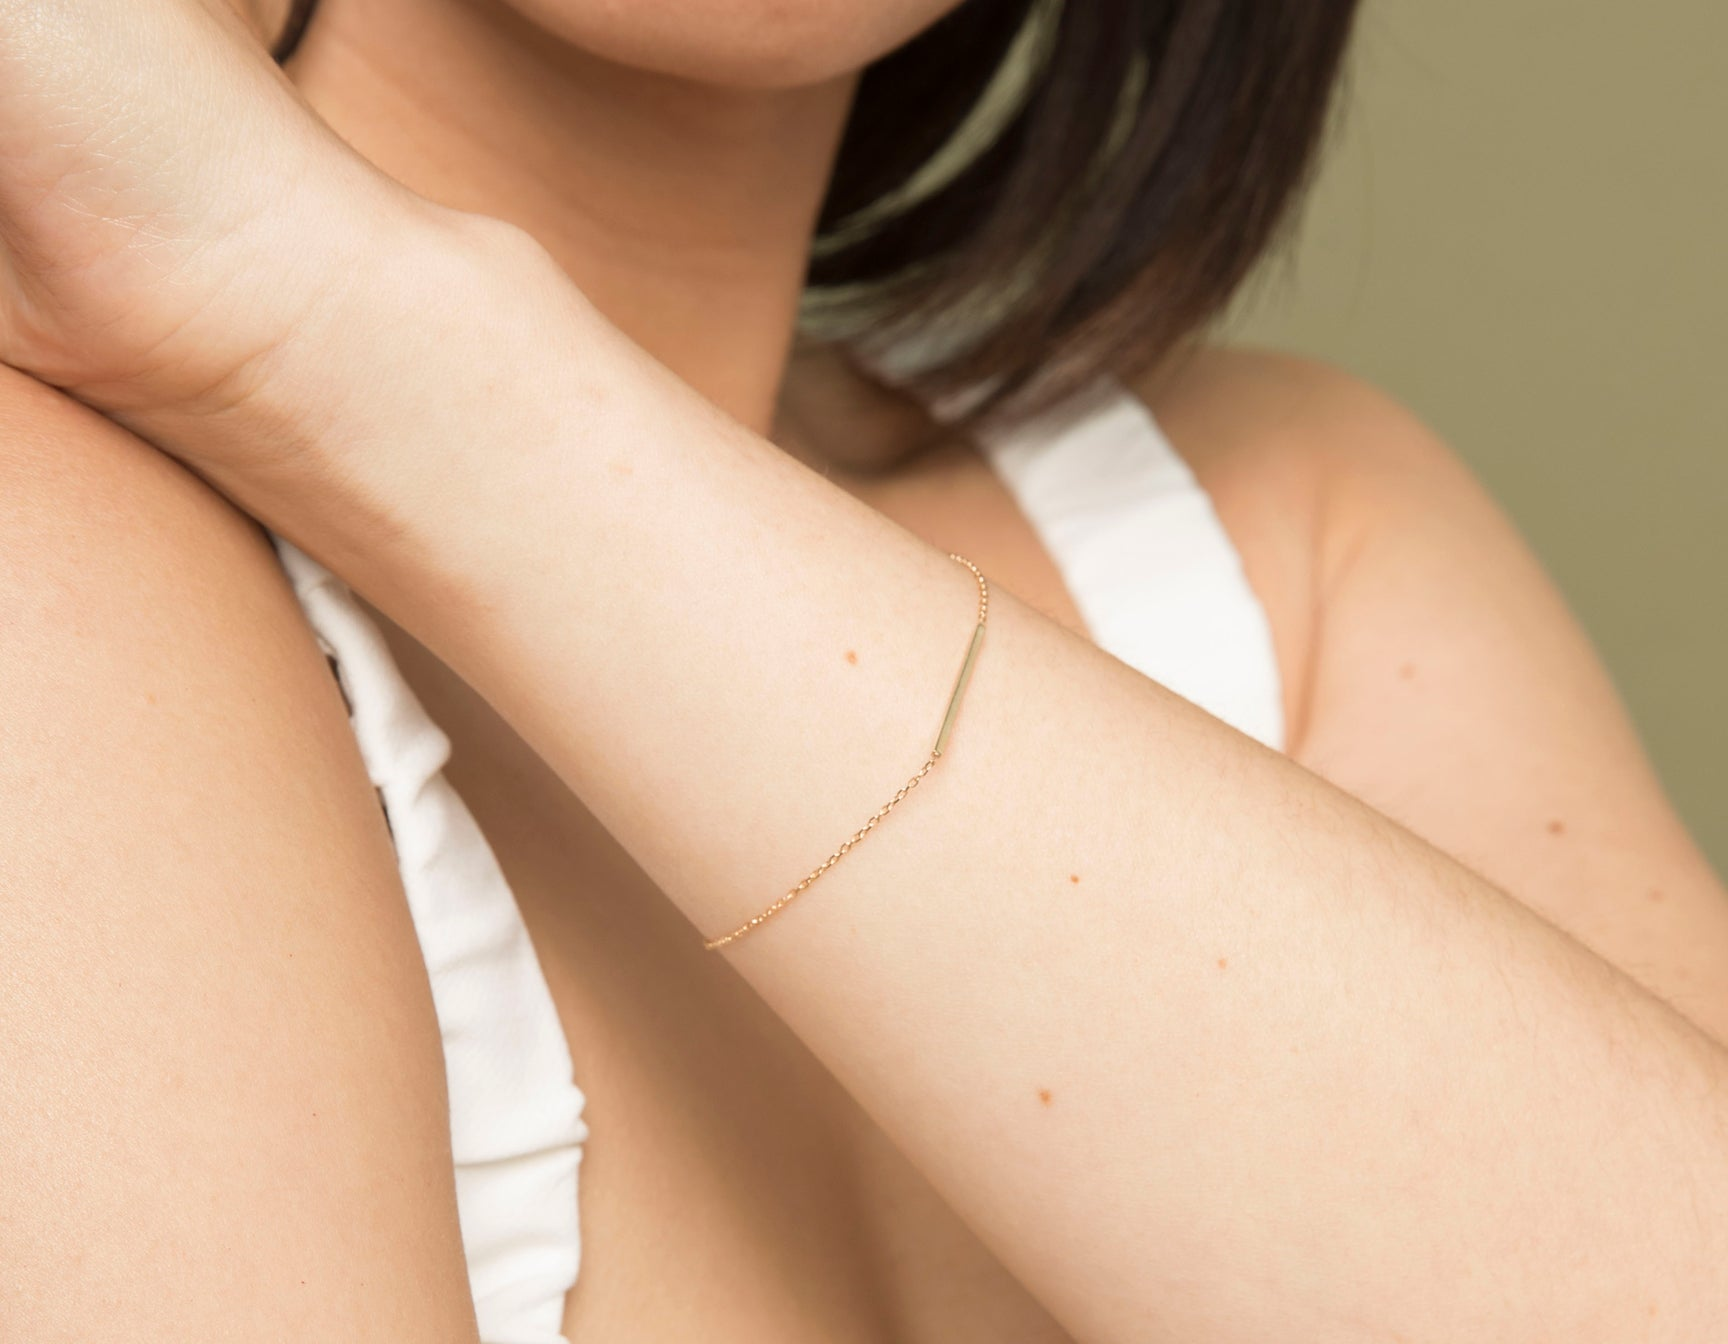 Model wearing sleek Vrai solid gold Line Bracelet, 14K White Gold